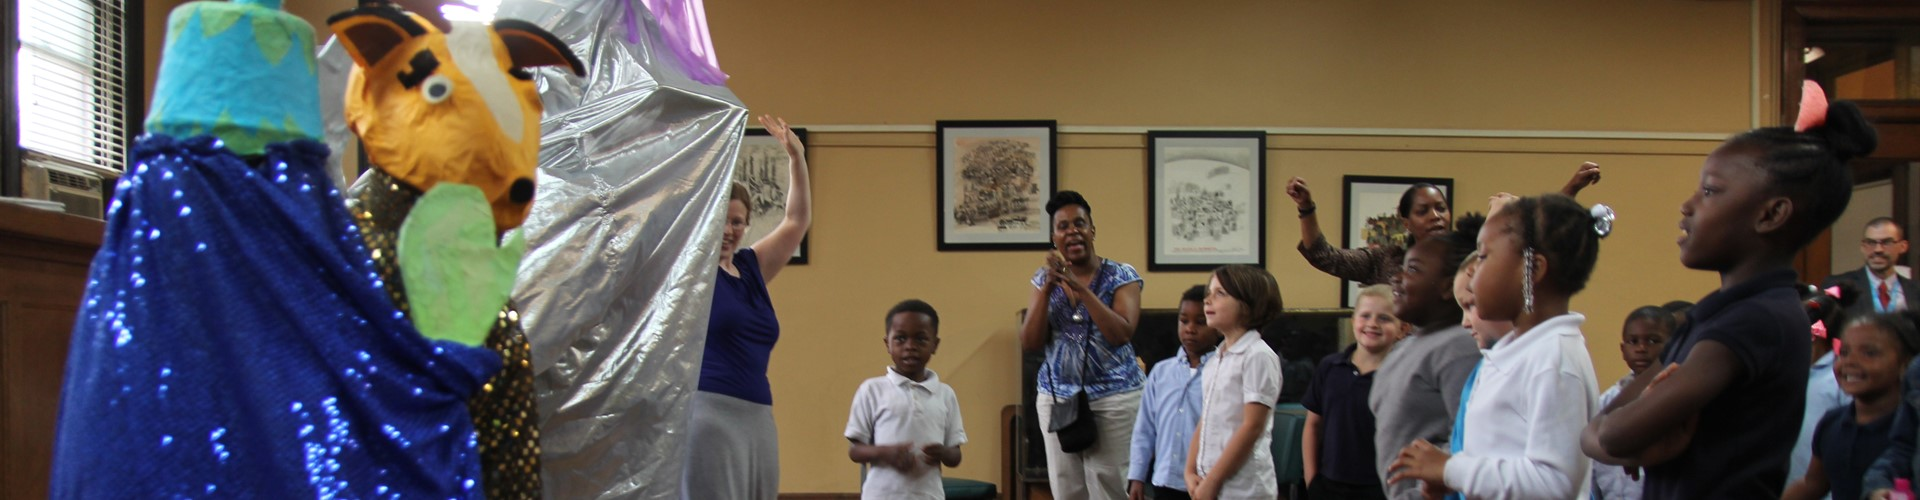 Wilkins KG visits the Braddock Carnegie Library